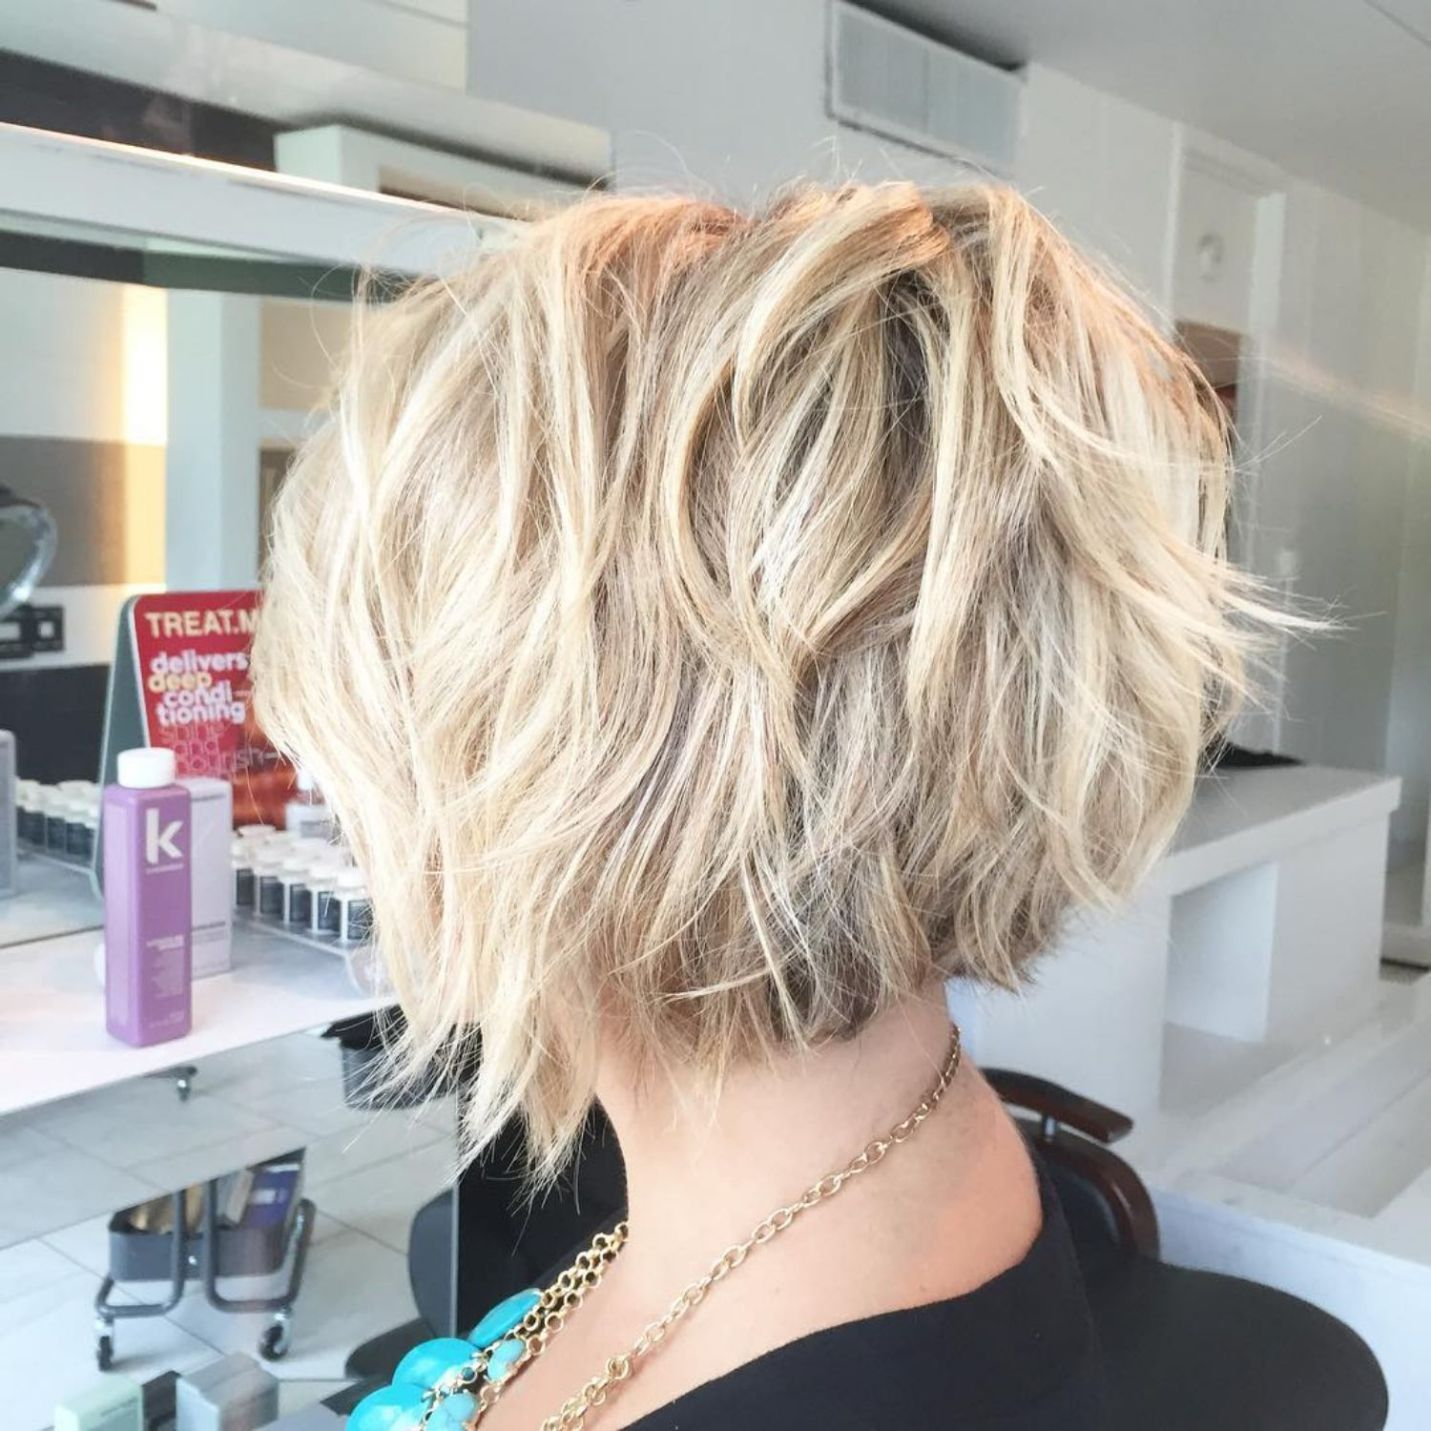 Choppy And Tousled Blonde Bob In 2020 Choppy Bob Hairstyles Bob Hairstyles Choppy Bob